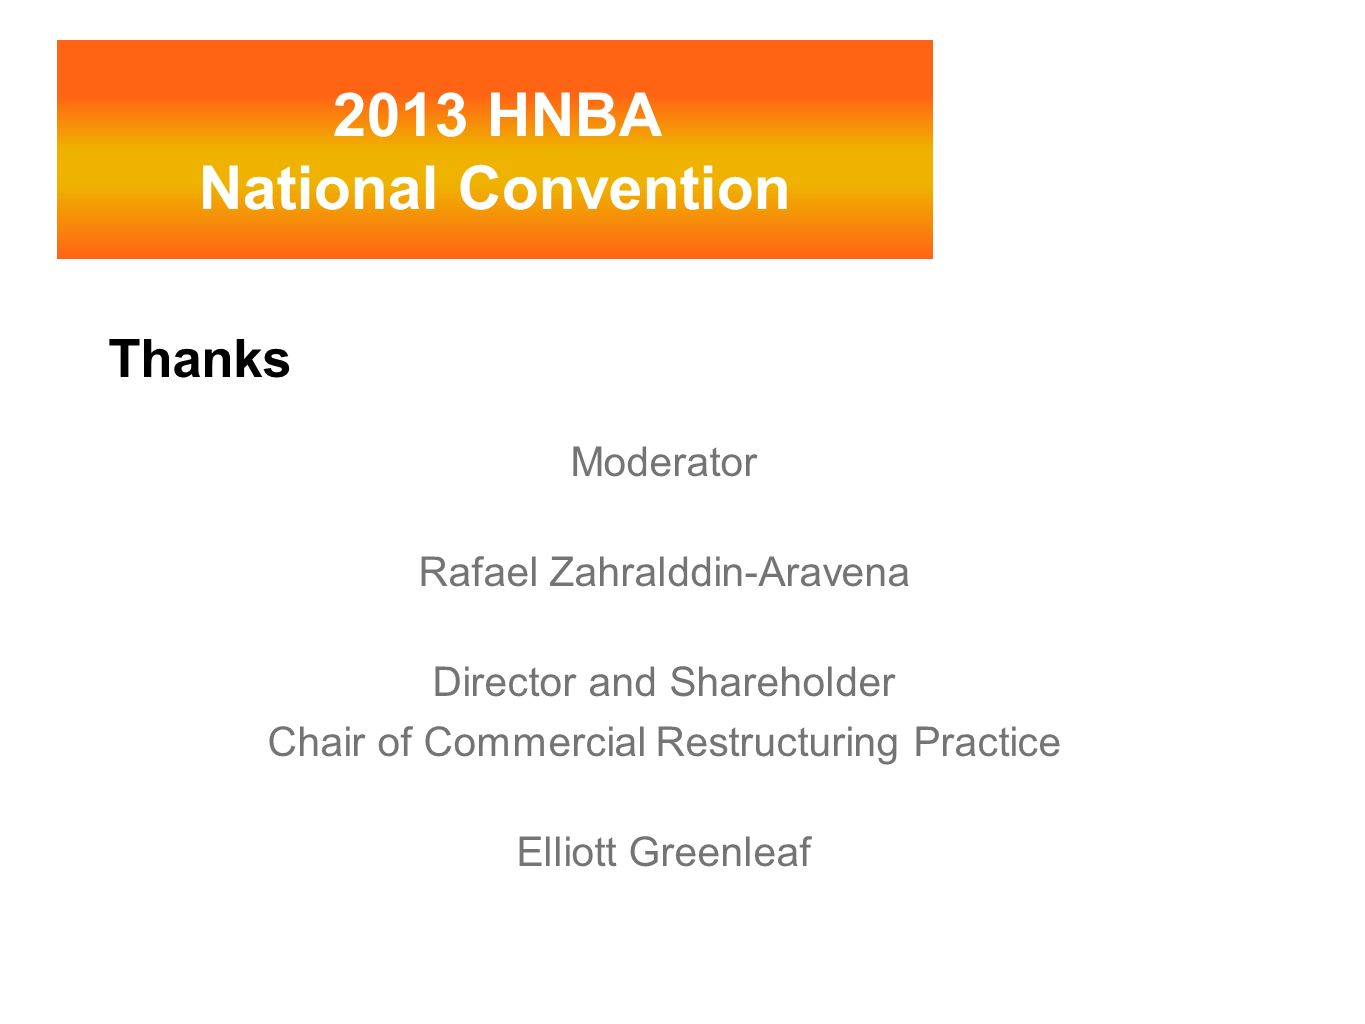 Thanks Moderator Rafael Zahralddin-Aravena Director and Shareholder Chair of Commercial Restructuring Practice Elliott Greenleaf 2013 HNBA National Co